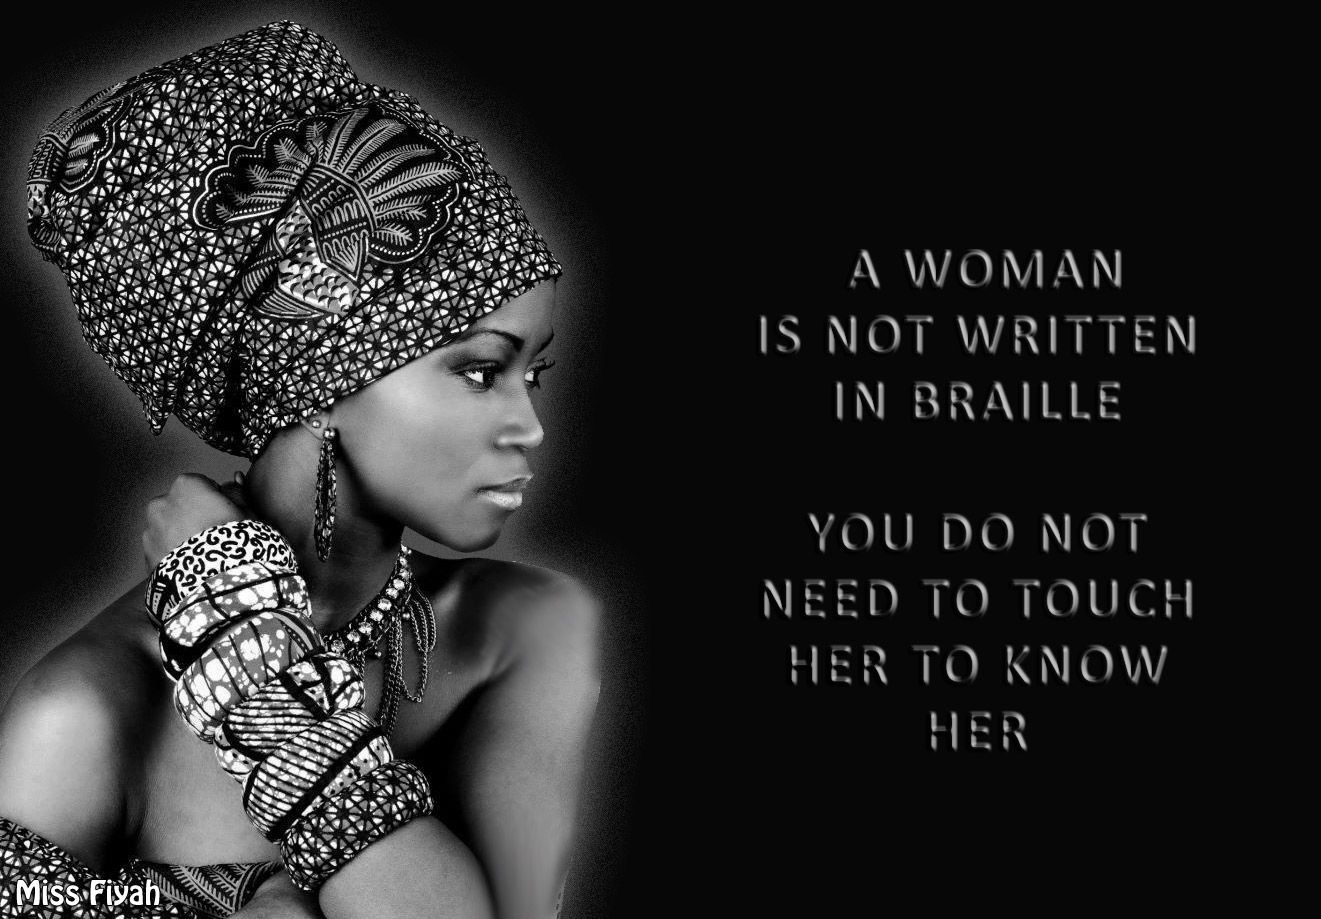 A woman is not written in braille. You do not need to